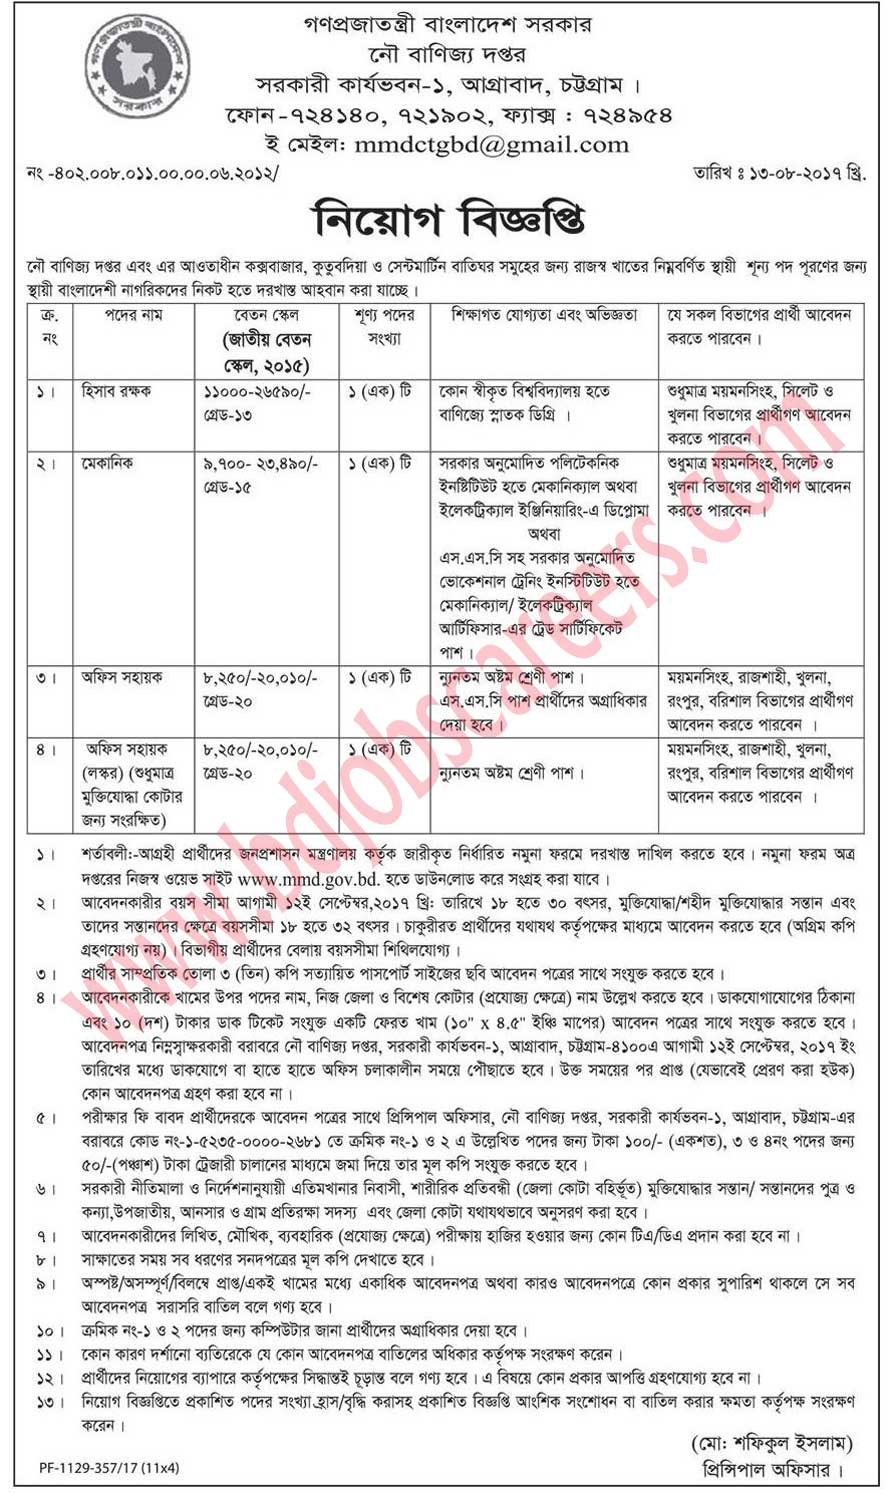 Mercantile Marine Department (MMD) Job Circular 2017